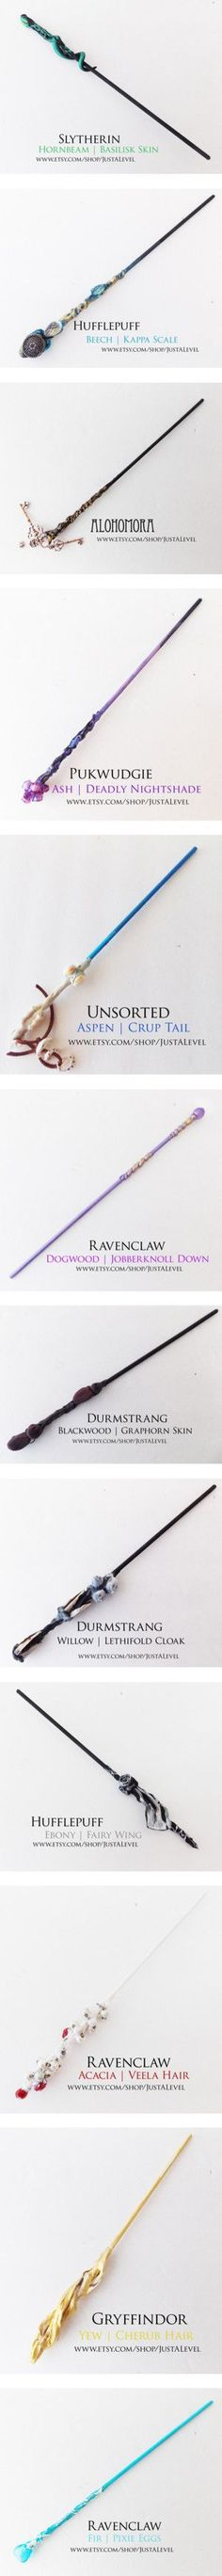 Harry Potter Inspired Wands by demiwitch-of-mischief on Polyvore featuring beauty products, harry potter, wands, weapons, wand, accessories, ravenclaw wand, gryffindor wand, haircare and hair styling tools